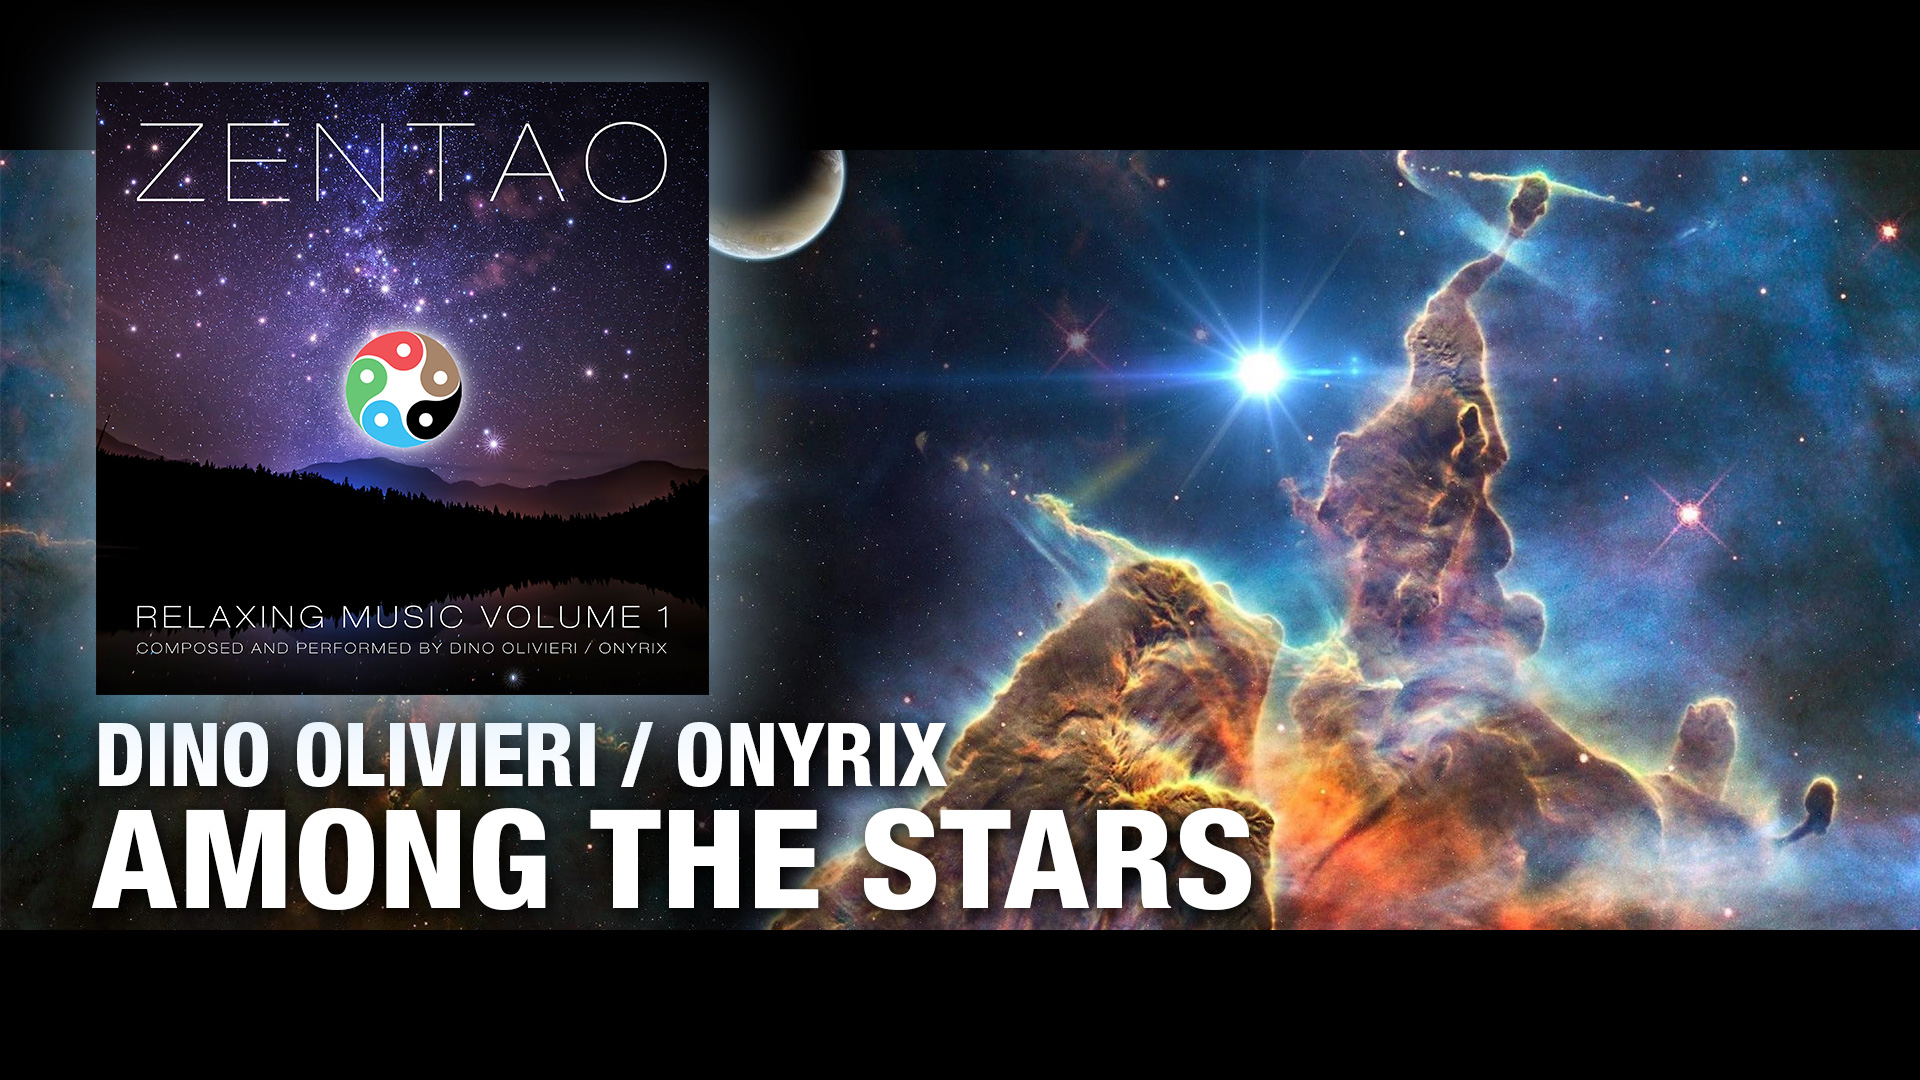 Among the Stars - ZENTAO Relaxing Music Volume 1 by Dino Olivieri